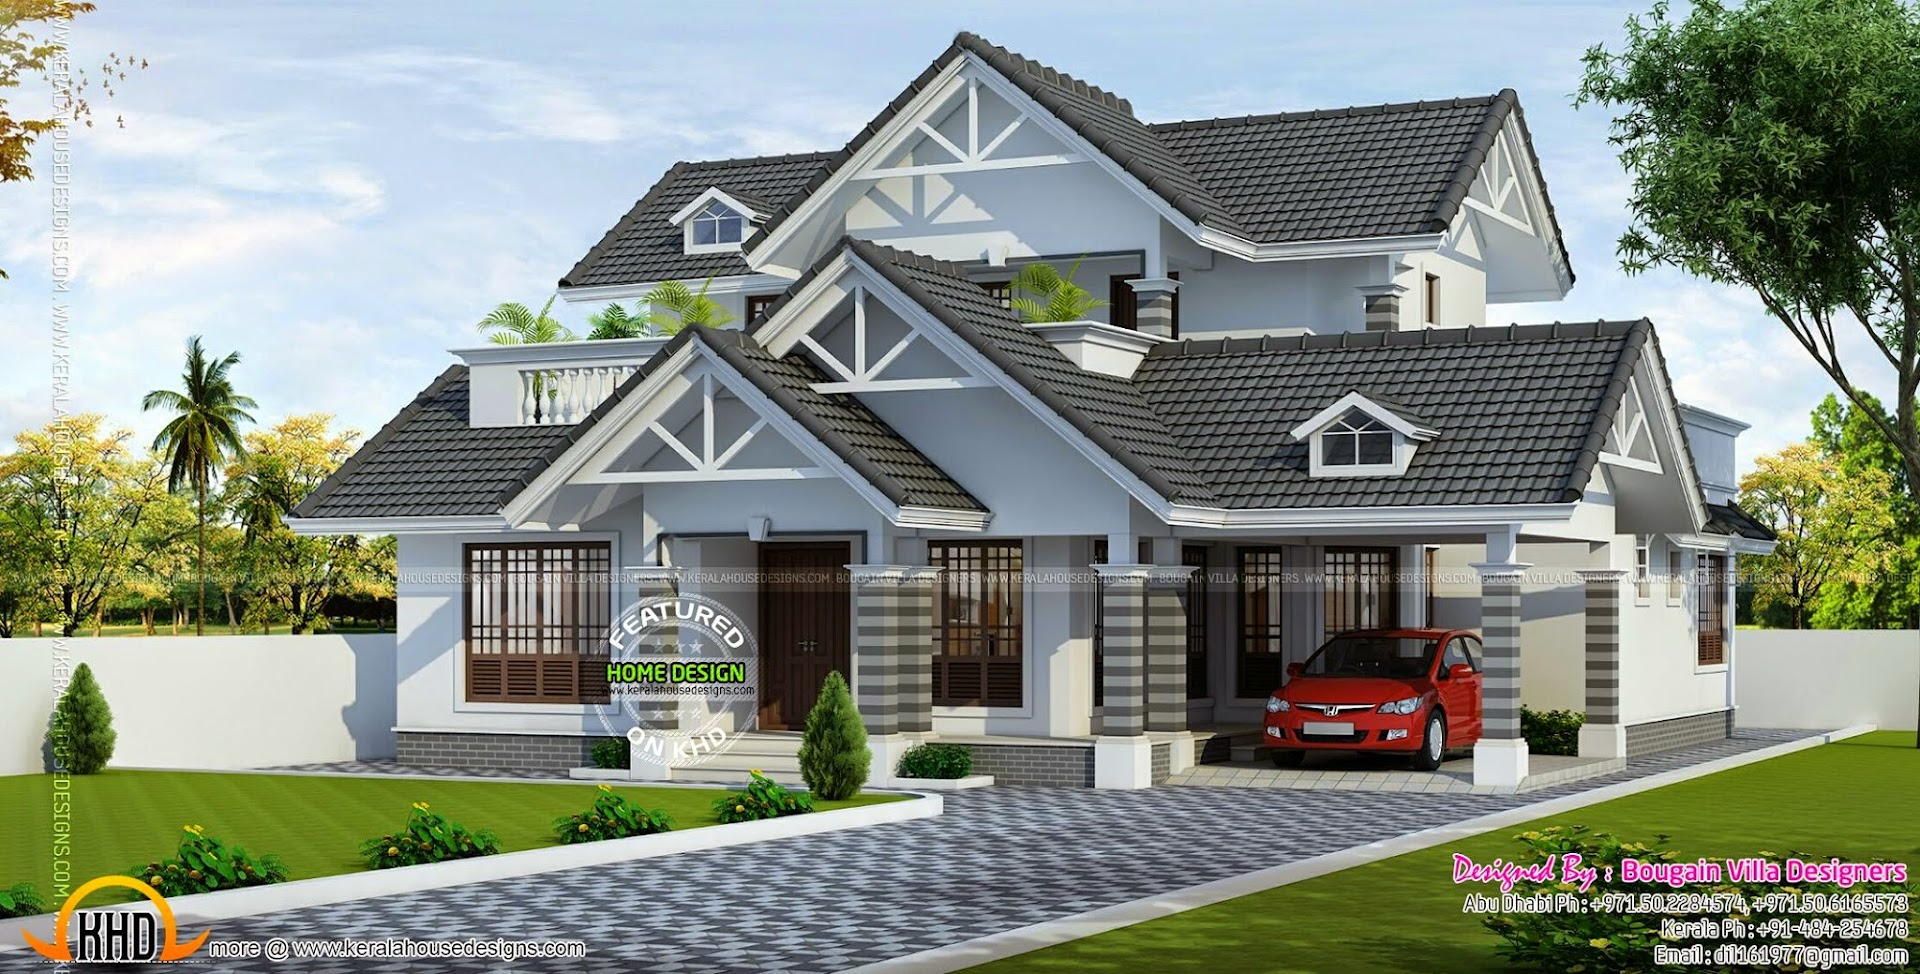 2480 square feet elegant home design kerala kerala home for Elegant home design